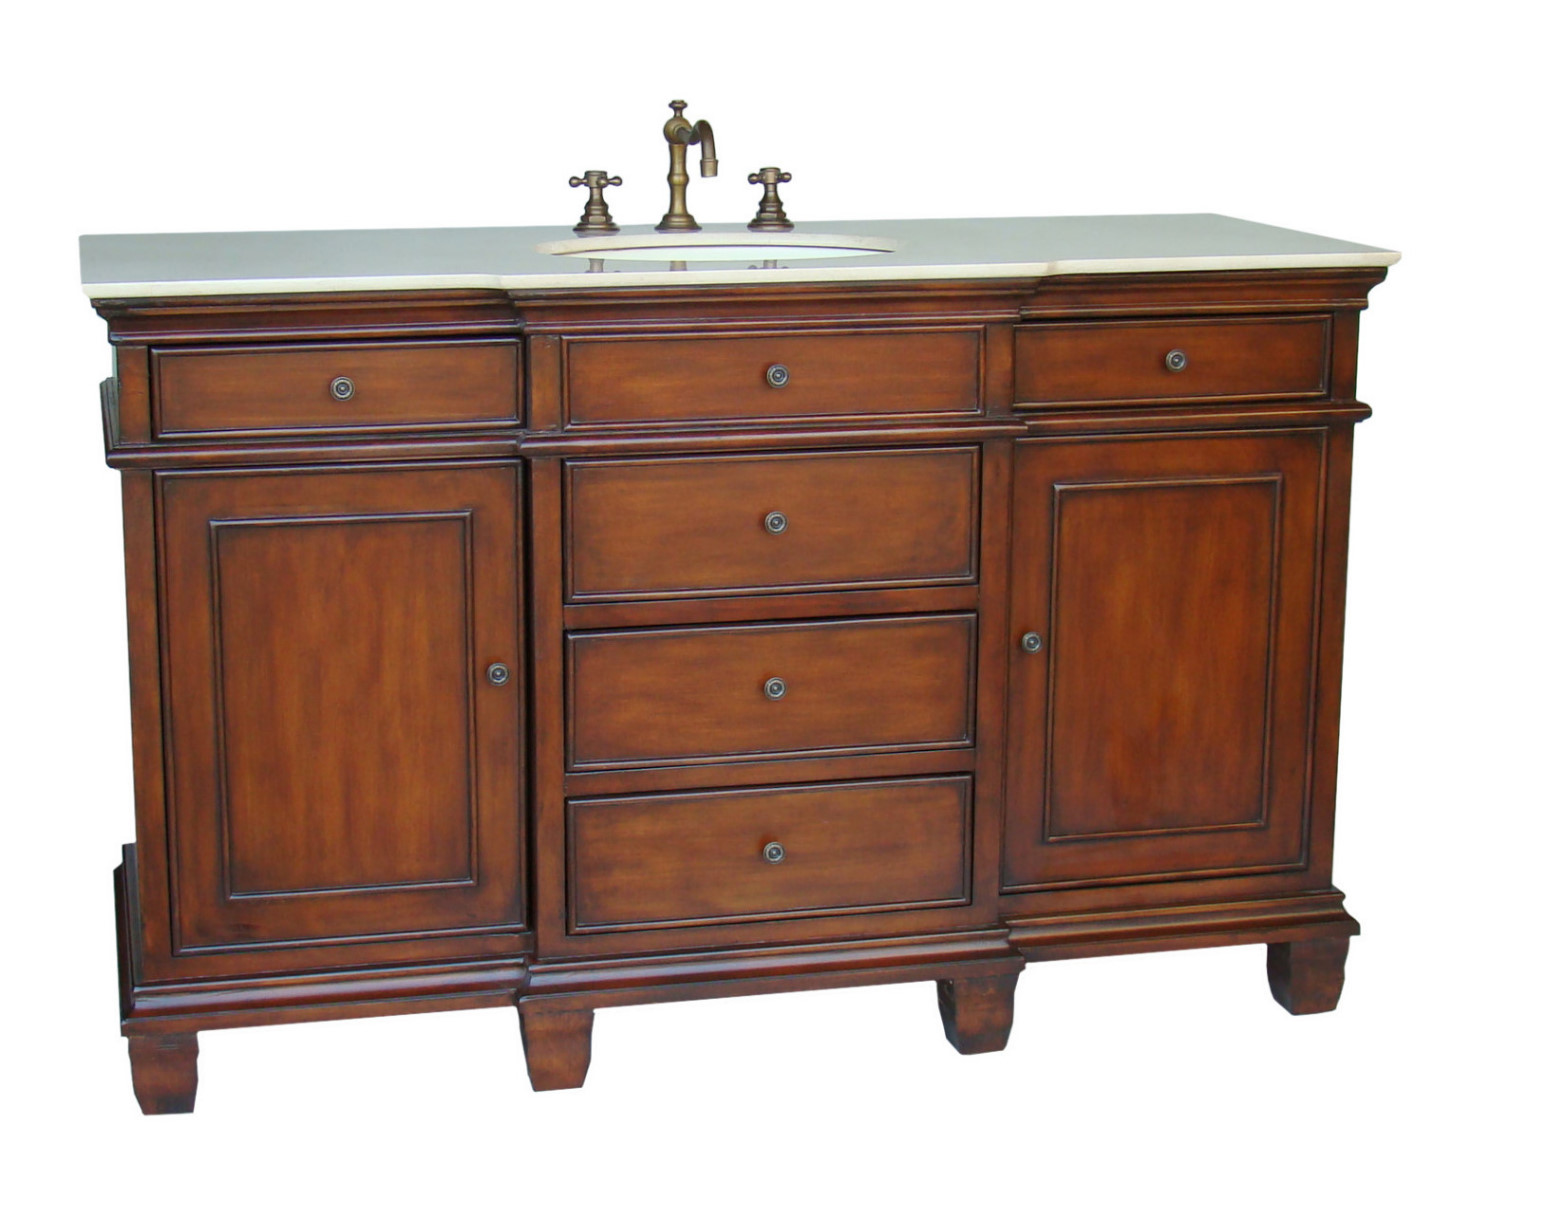 56 Inch Dunsmore Vanity Single Sink Vanity Chestnut